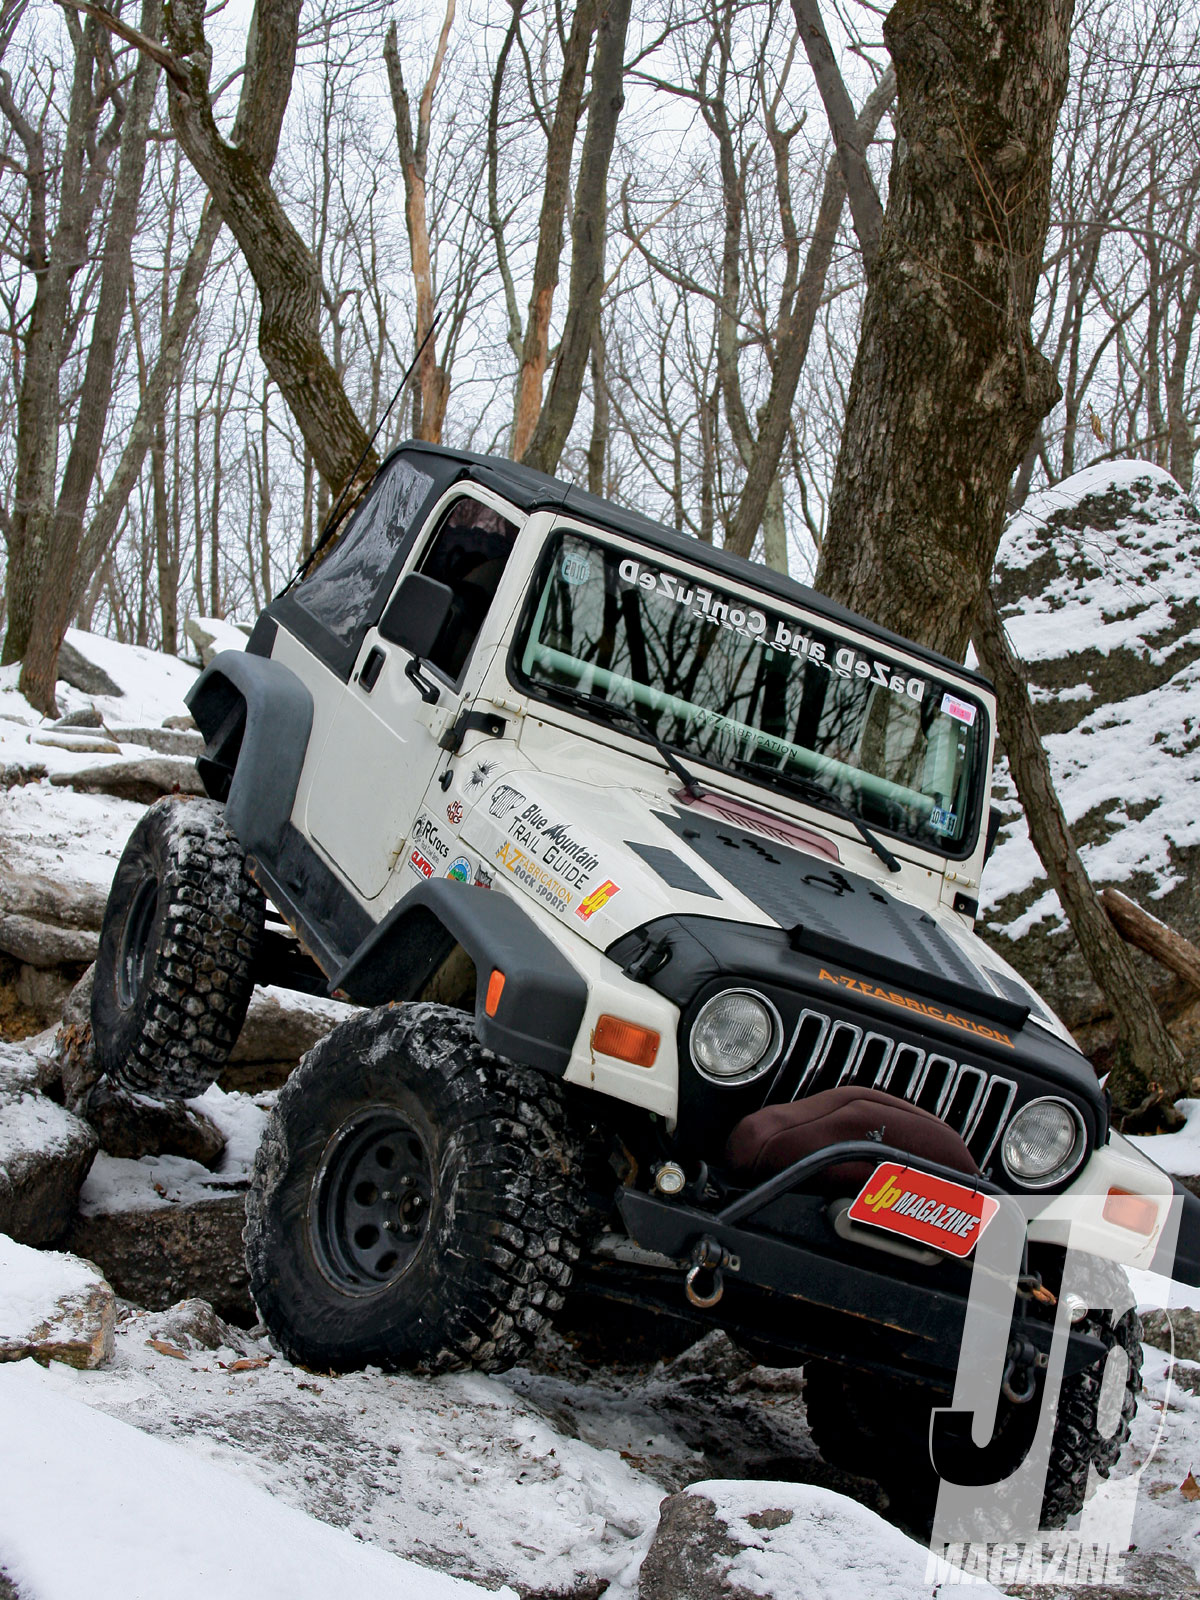 154 1103 06 o+154 1103 snow crawling rausch creek off road park+1999 jeep wrangler tj front shot